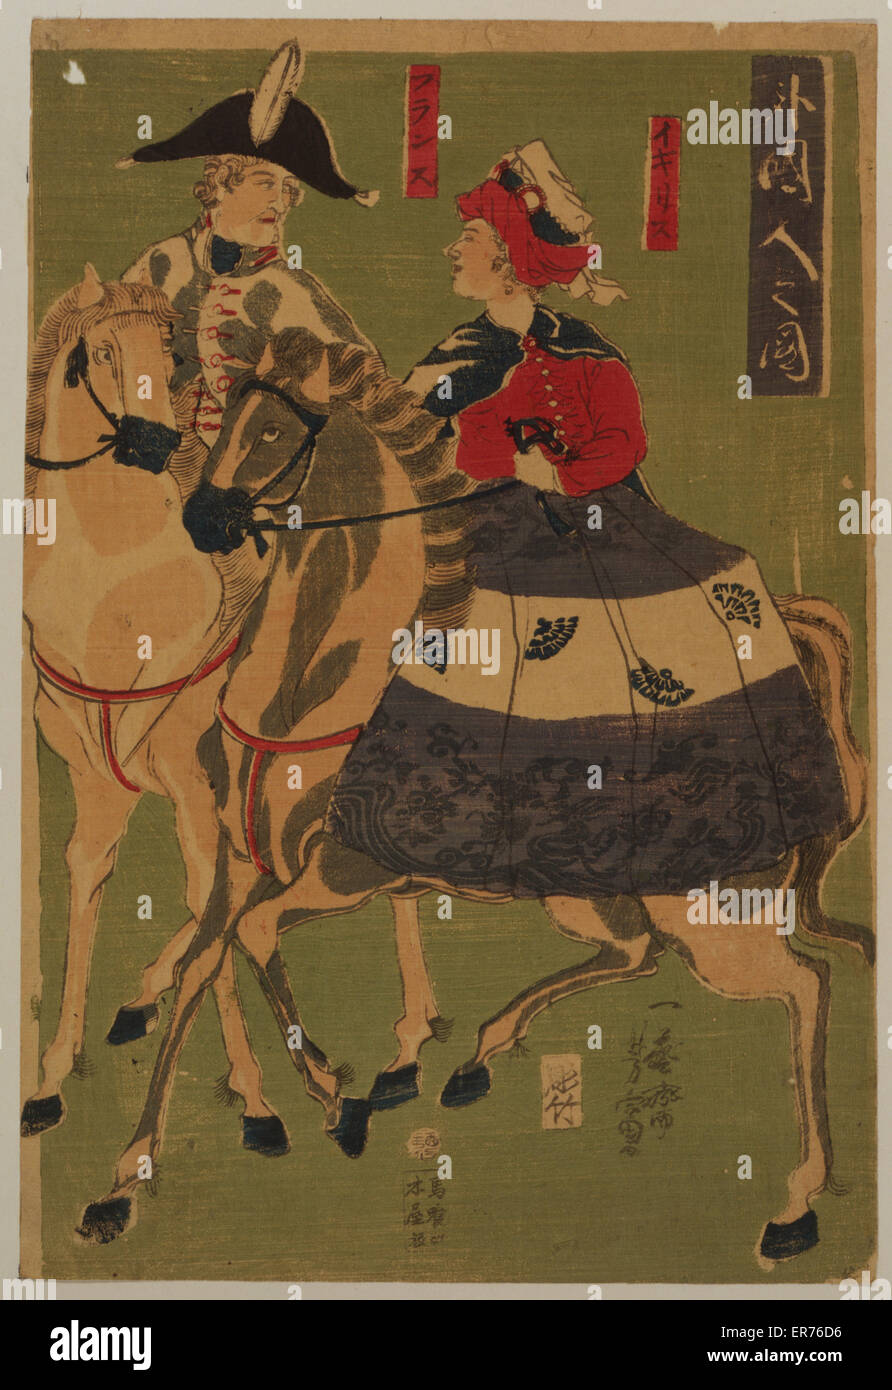 Portraits of foreigners - English, French. Japanese print shows an Englishman and a French woman horseback riding. - Stock Image